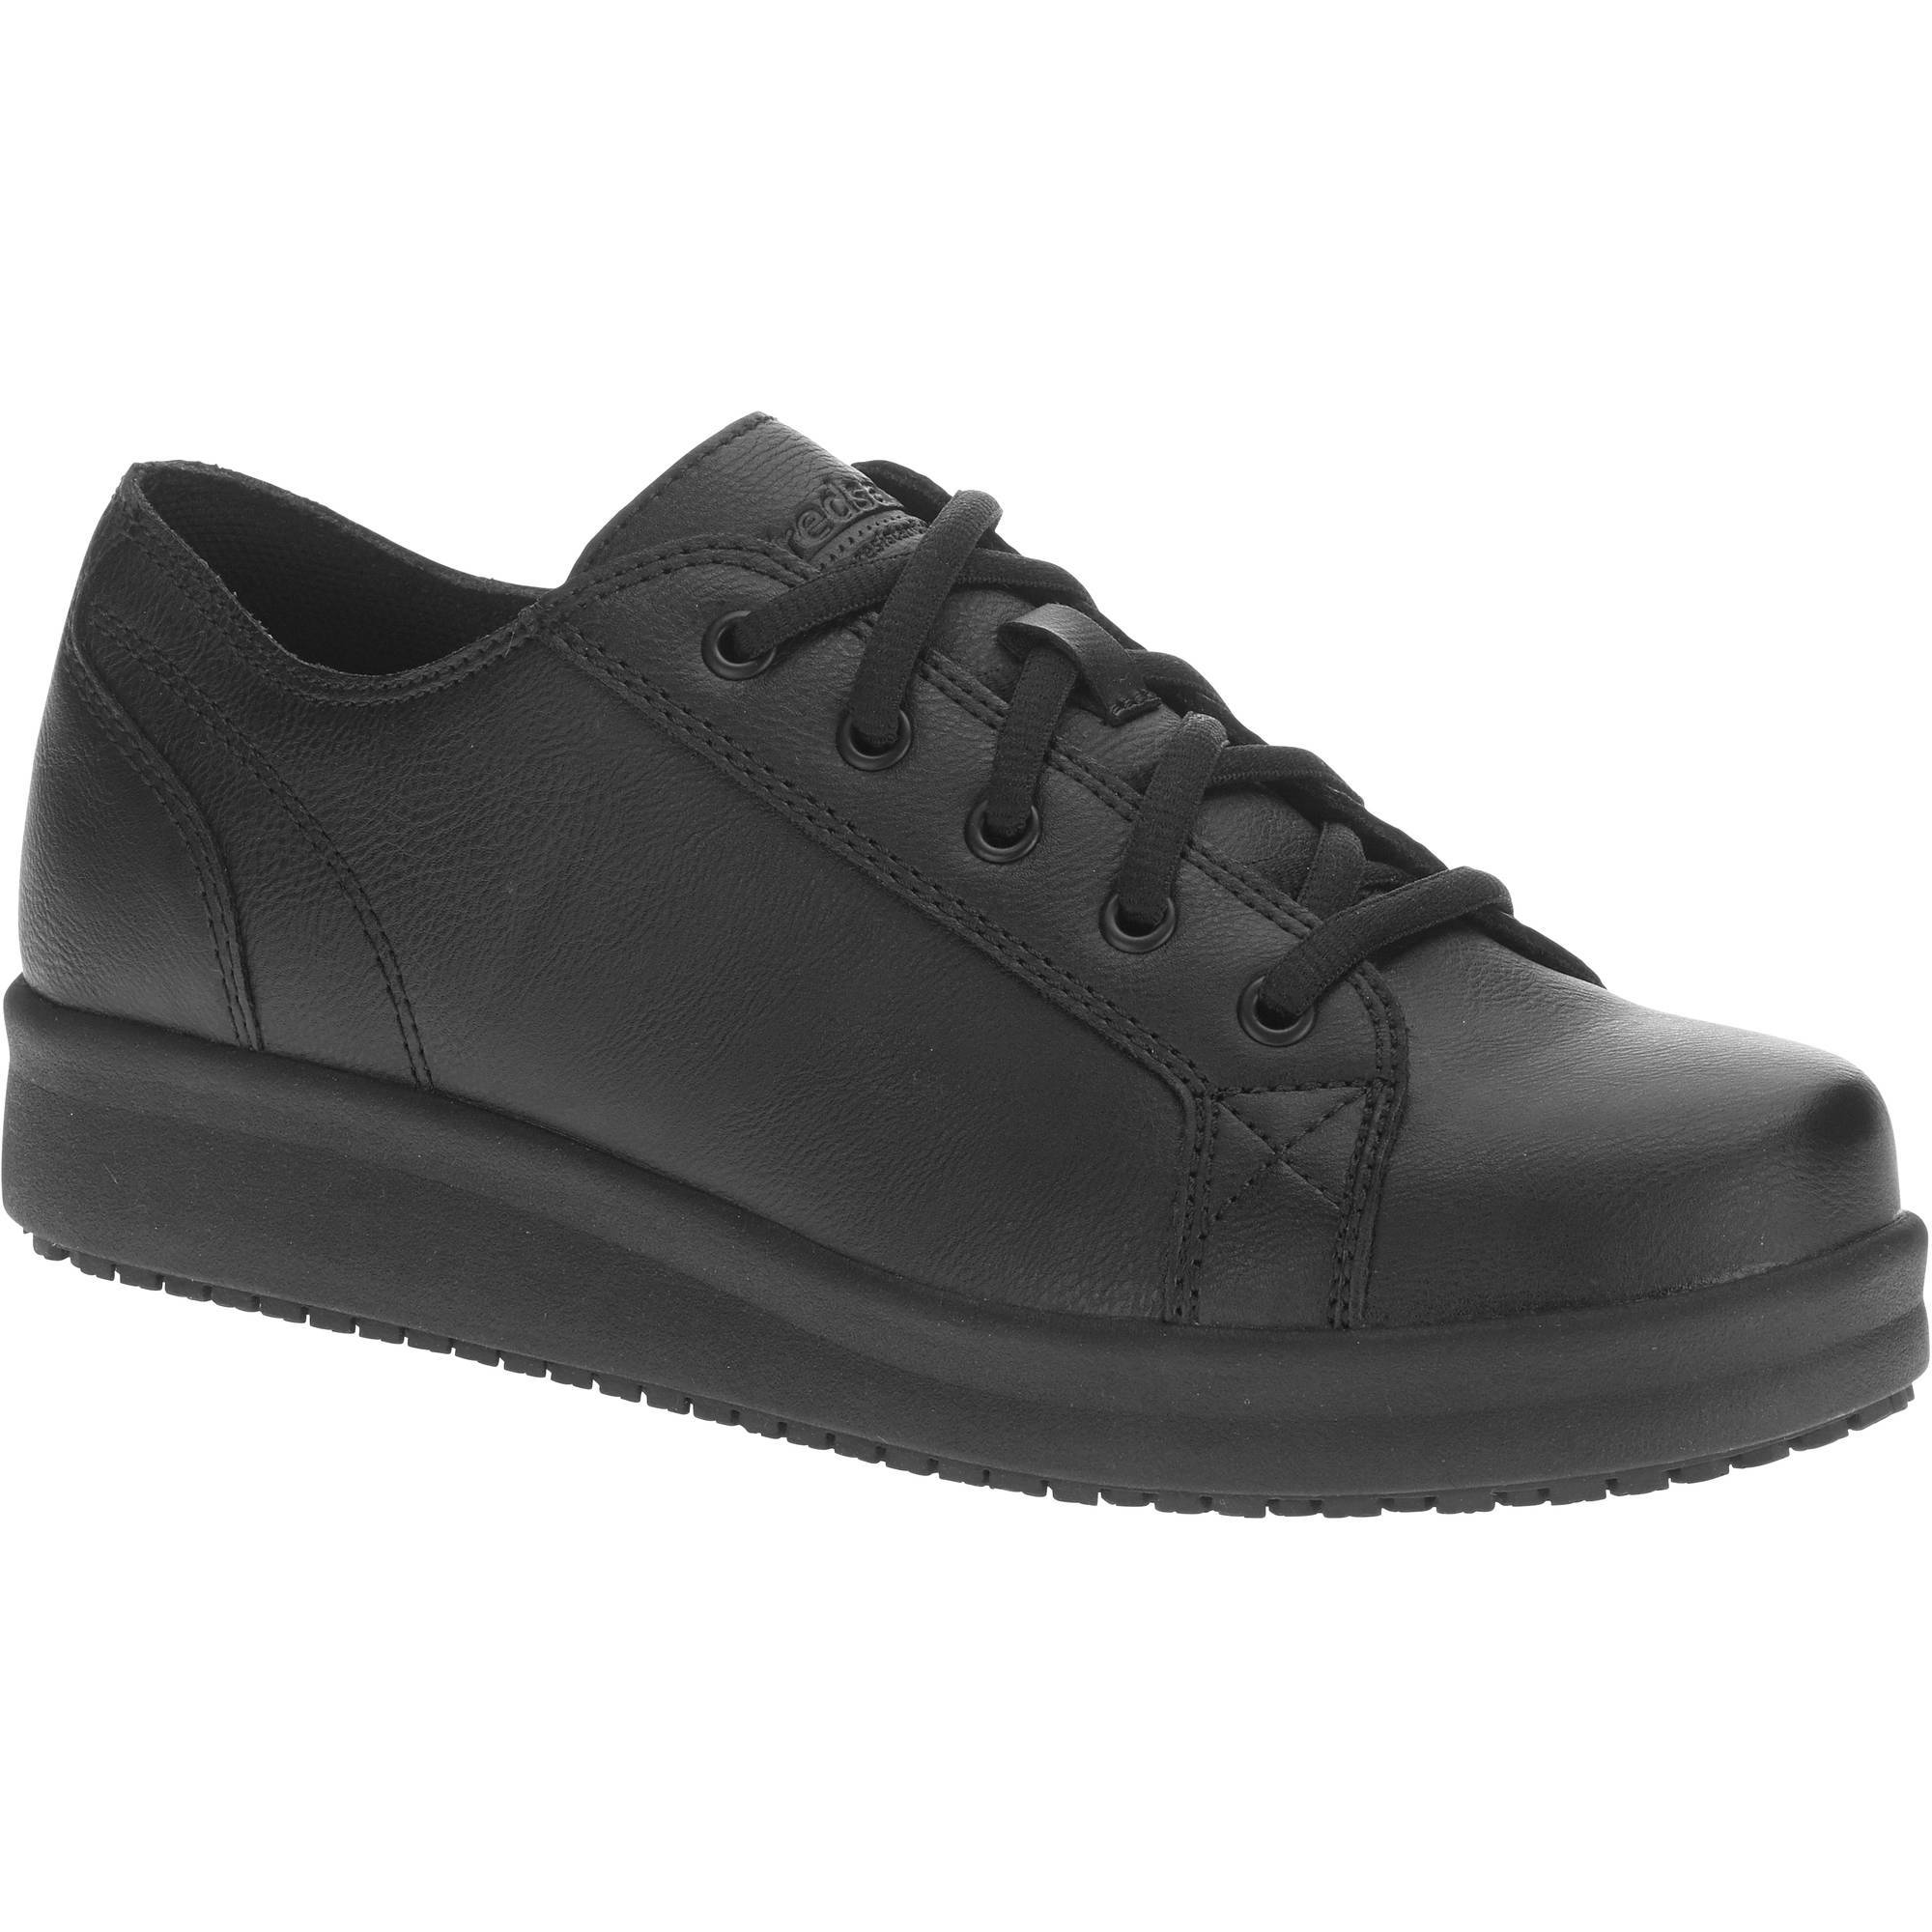 nike work shoes slip resistant www imgkid the